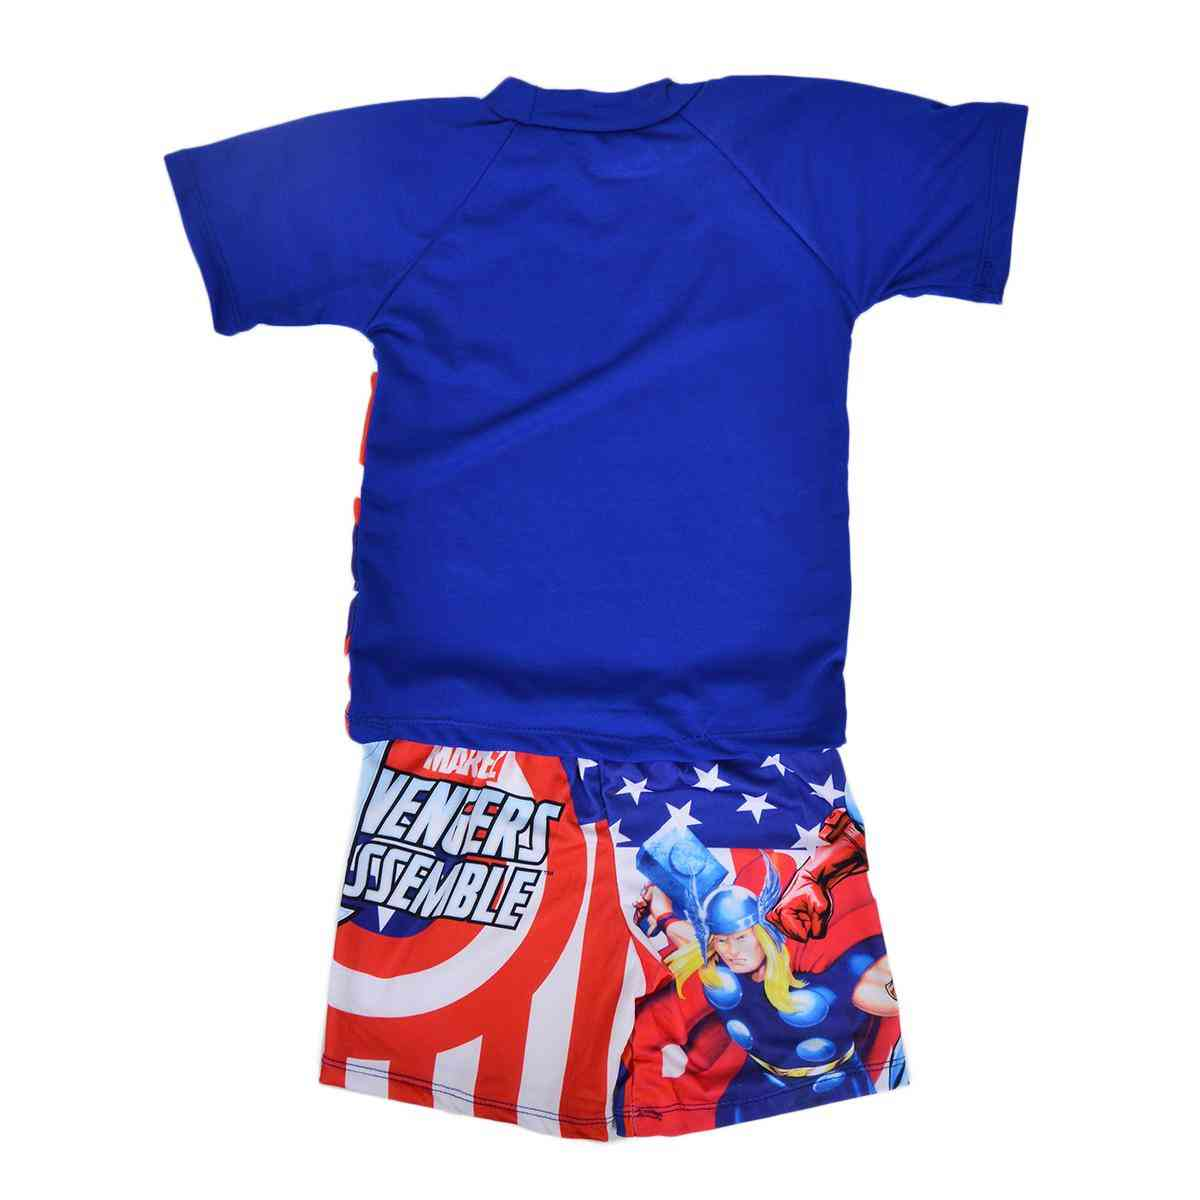 Captain America Swimming Suit for Boys - Blue (2 to 3 Years)